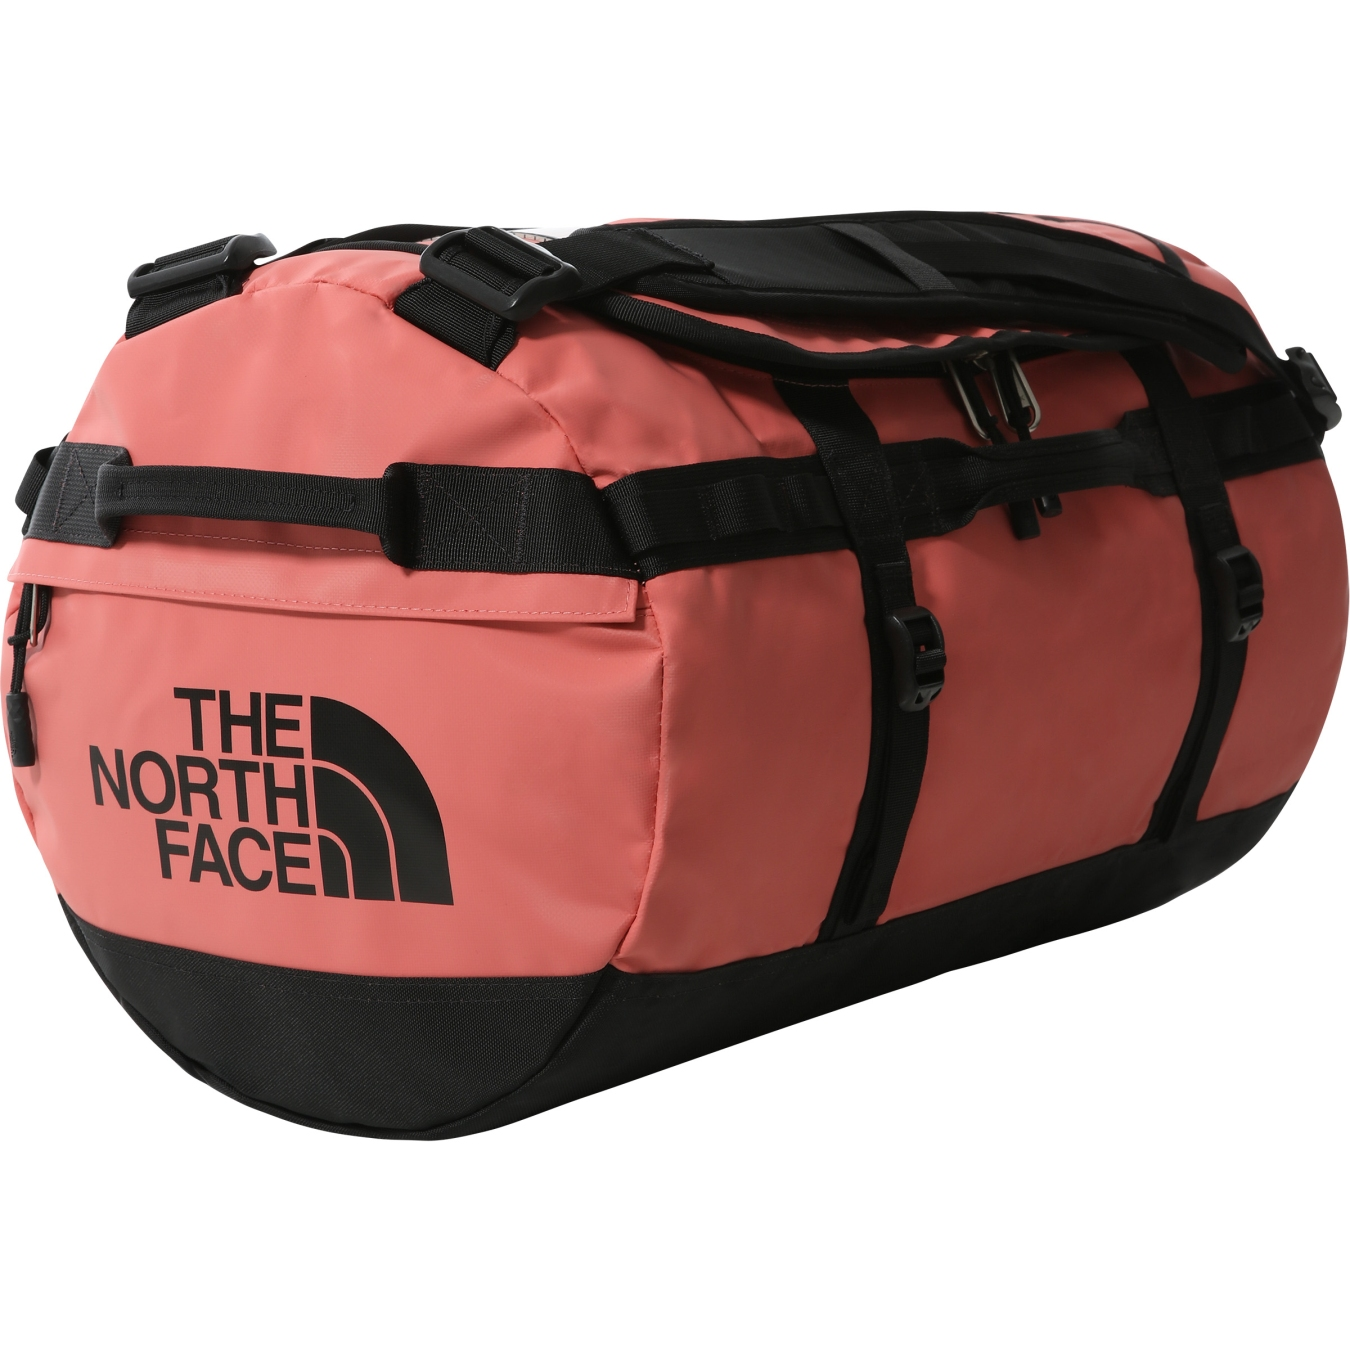 Picture of The North Face Base Camp Duffel - S - Faded Rose/TNF Black